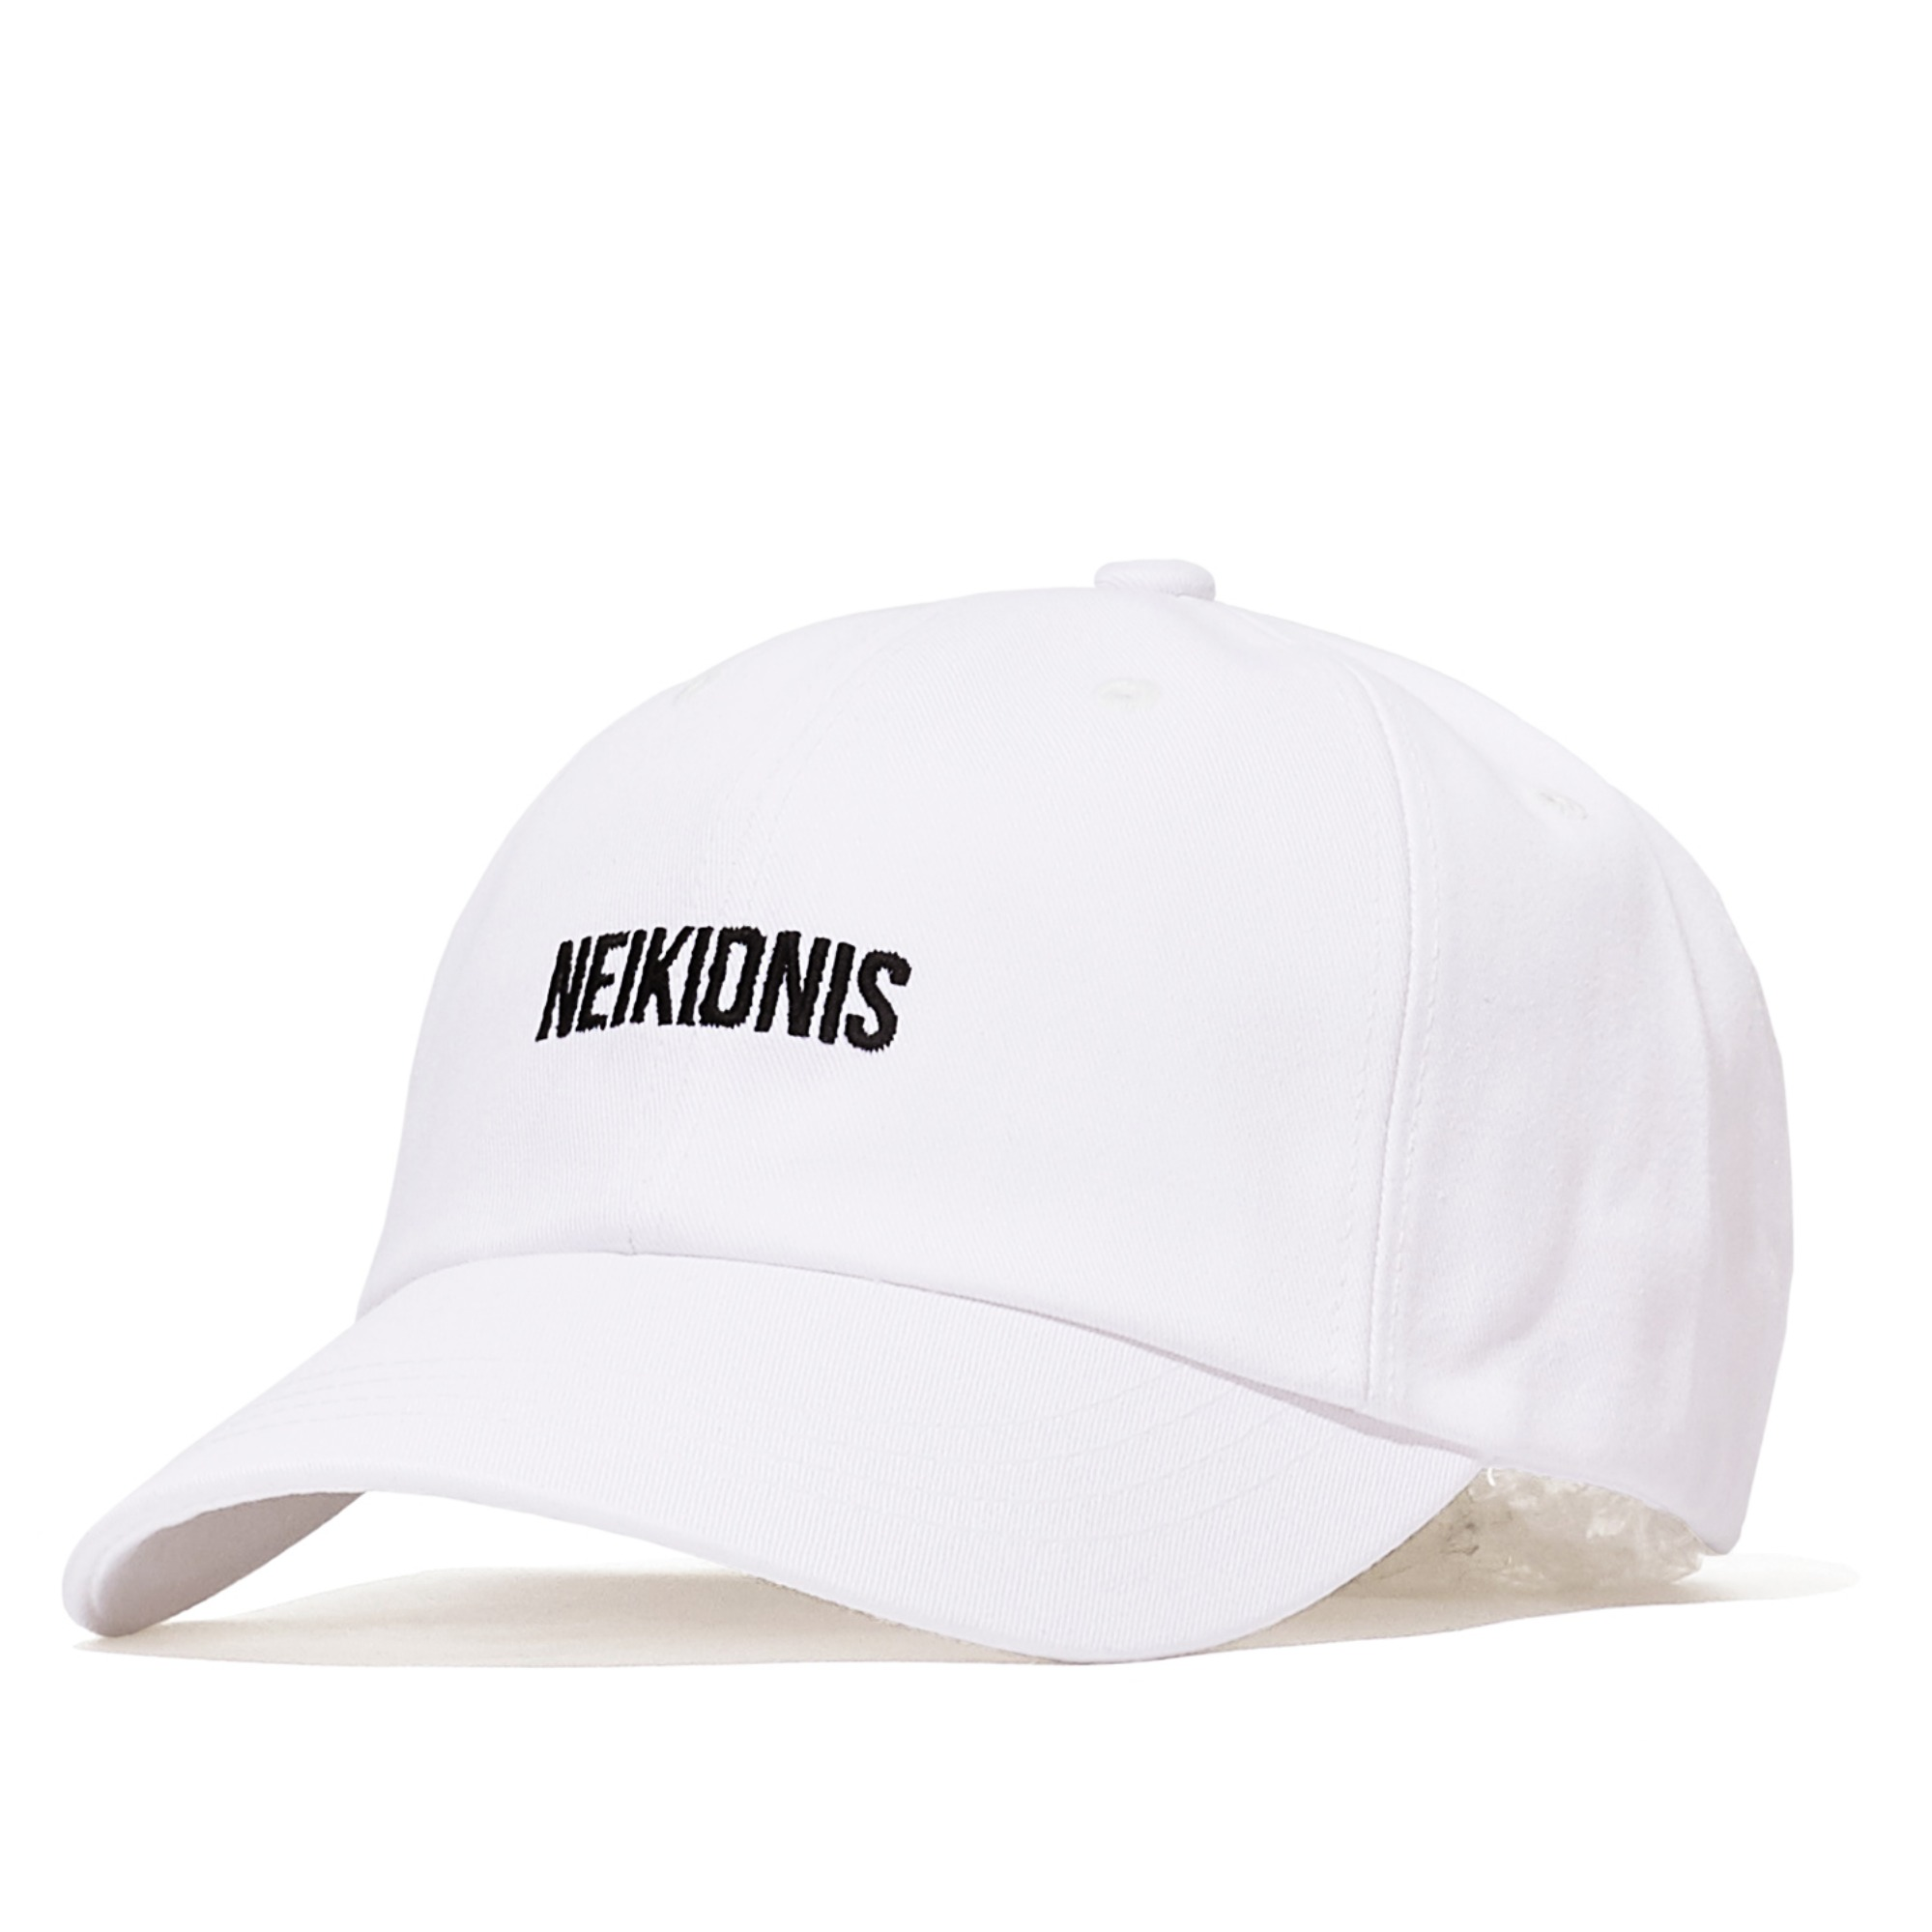 LOGO COTTON BALL CAP / WHITE